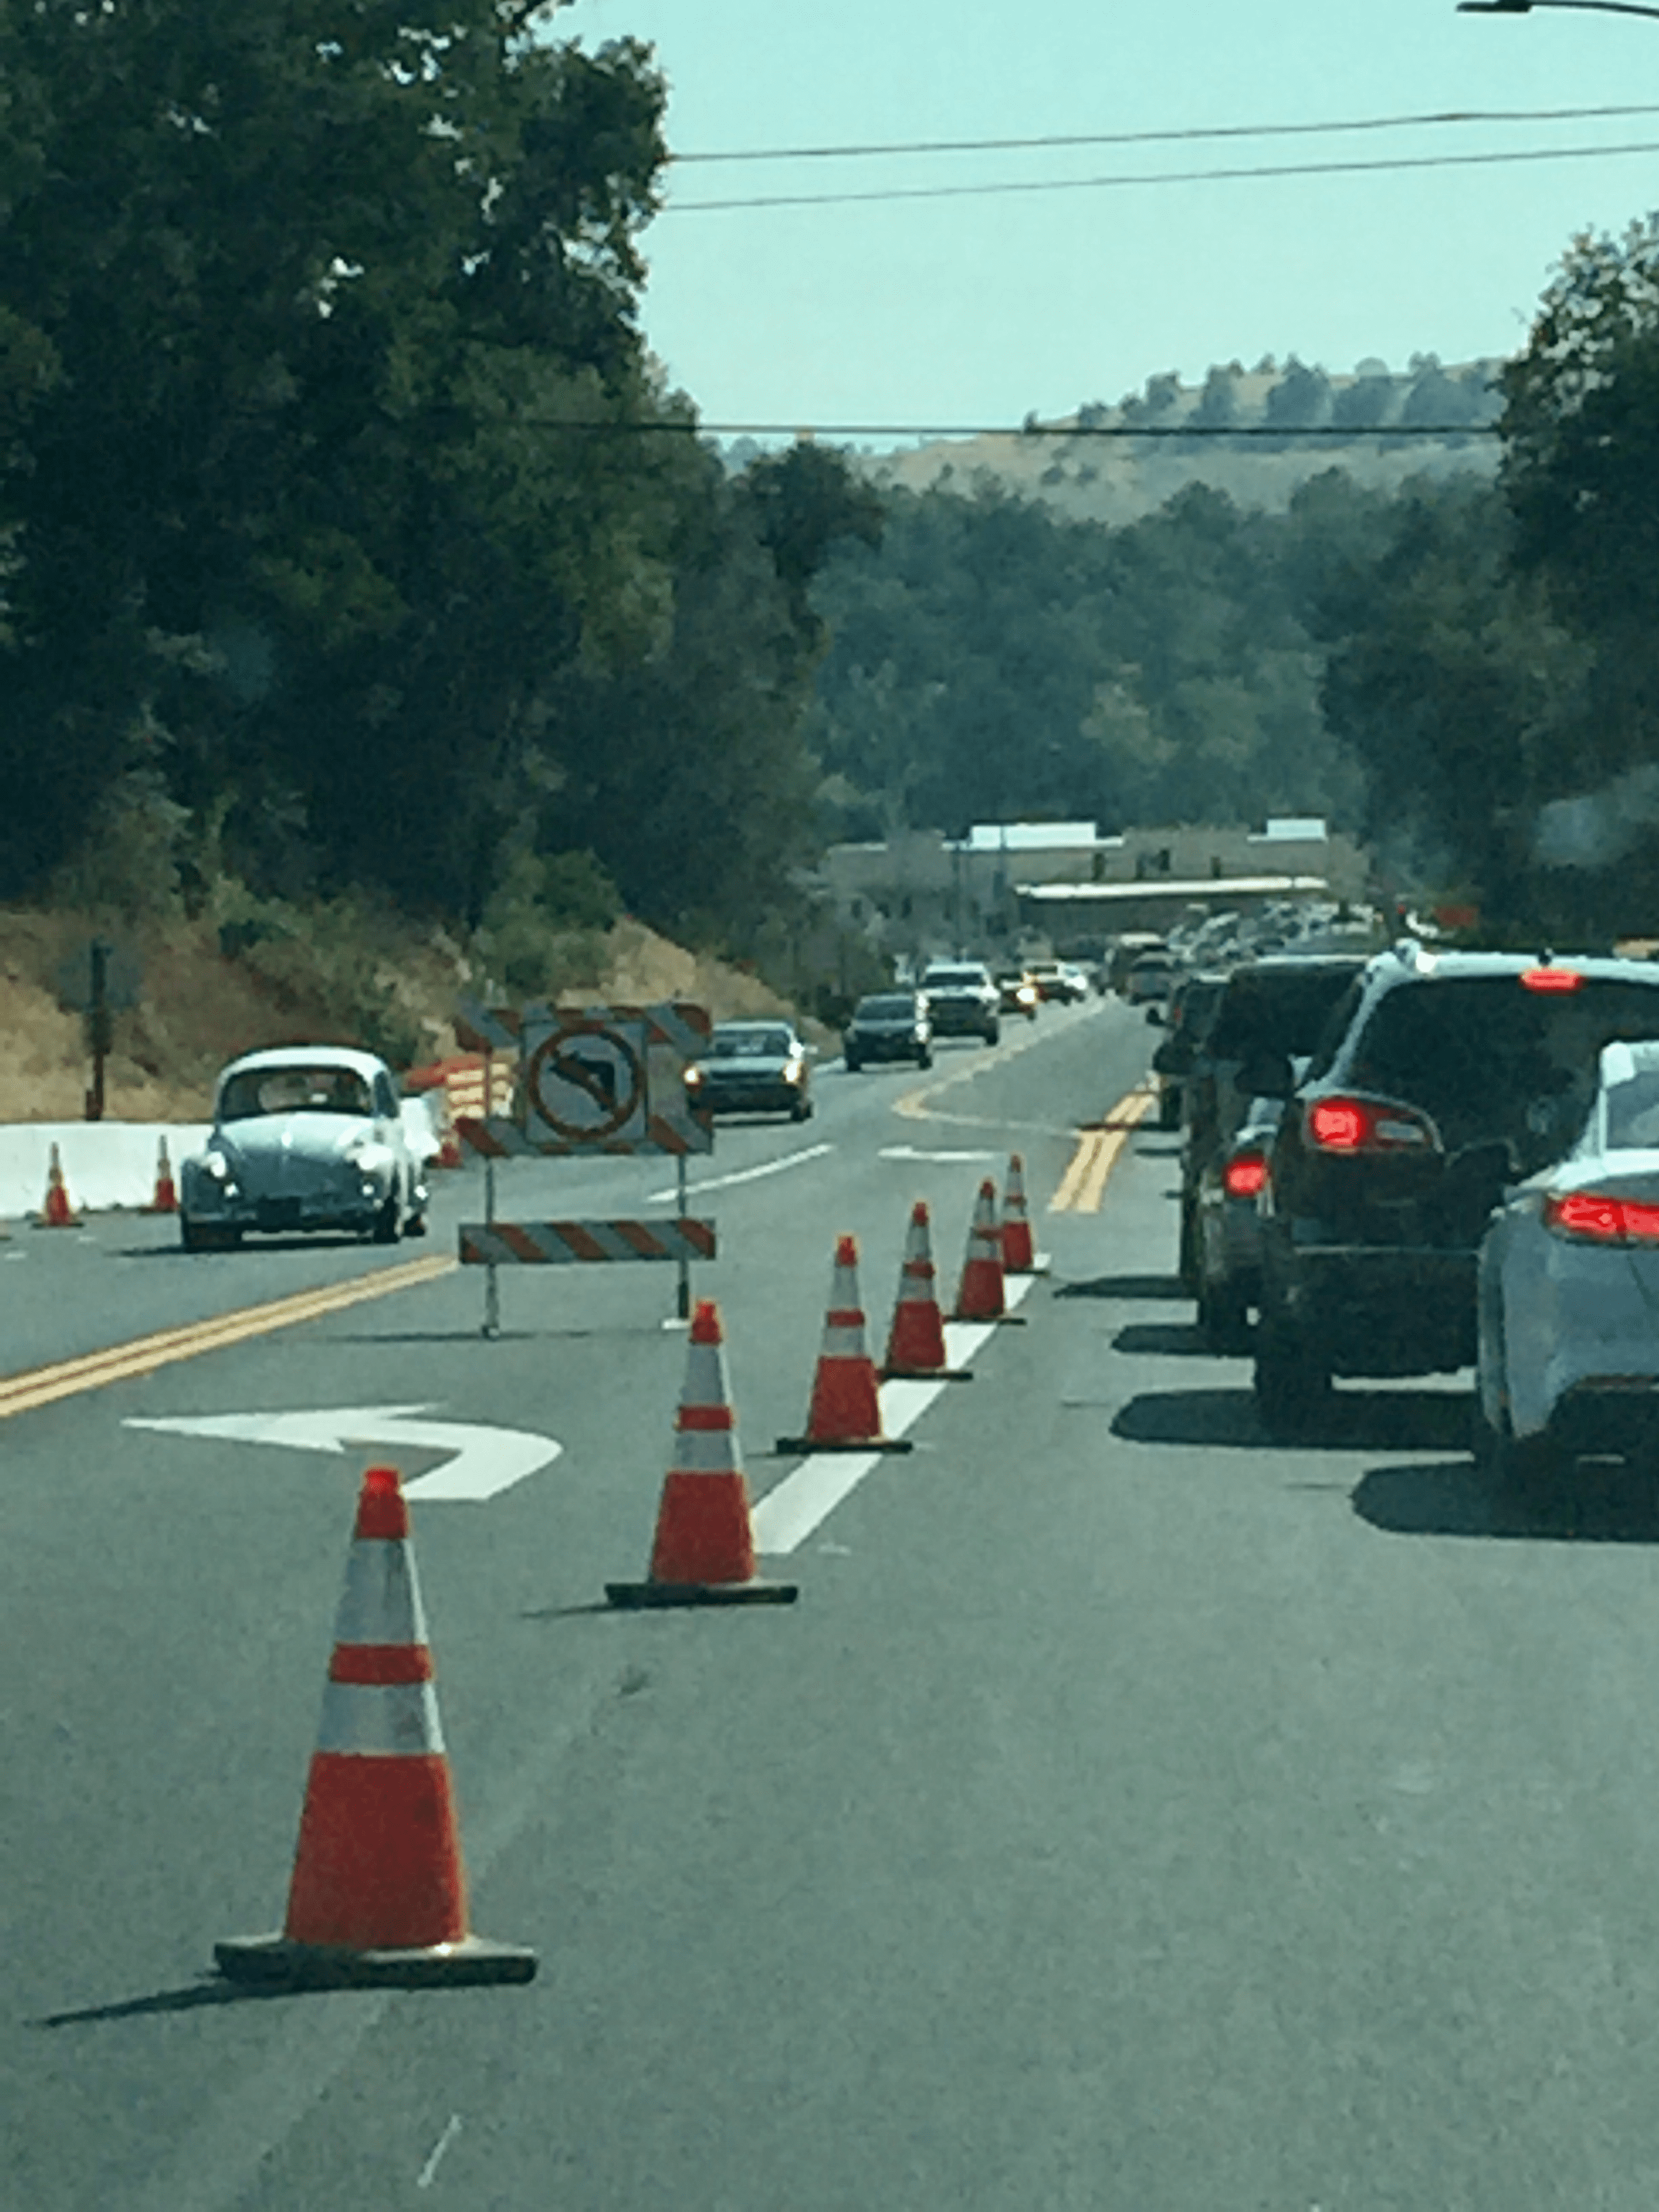 Road Work In September on Highways 108, 120, 49 And 4